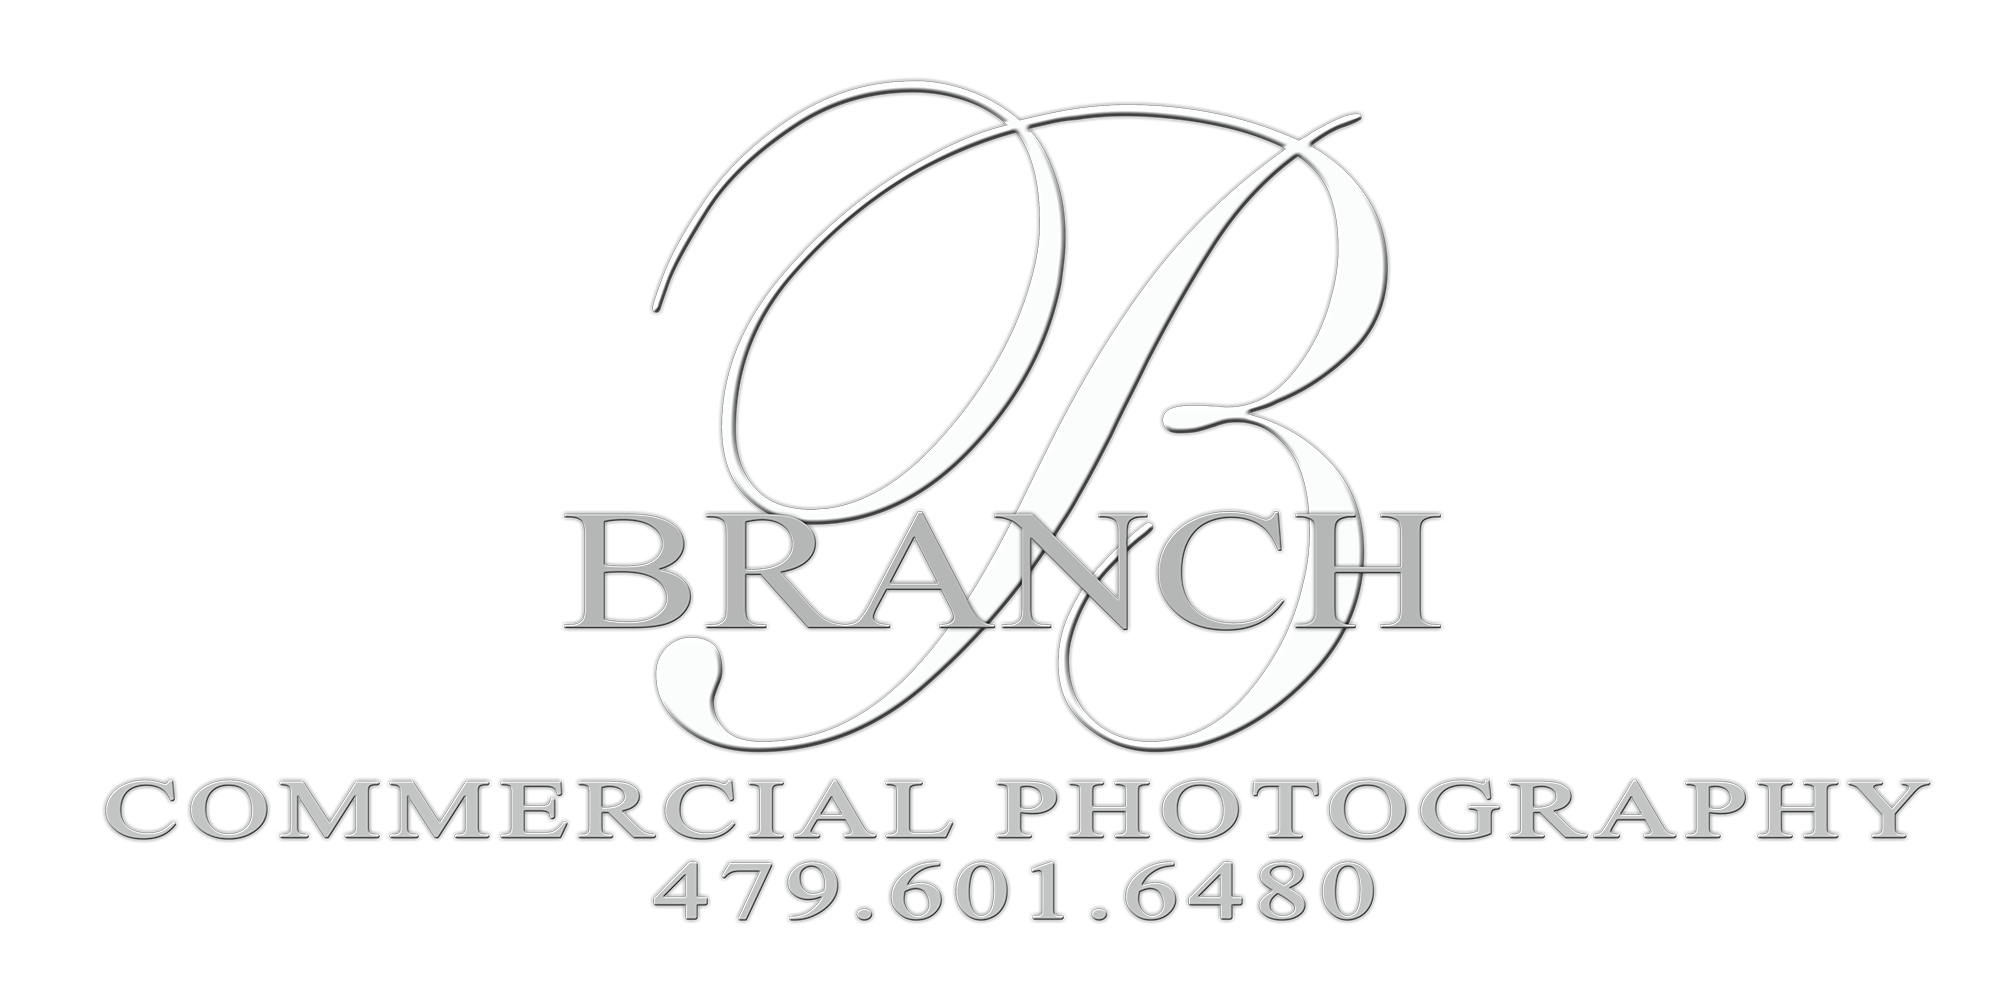 Branch Commercial Photography - Architecture, Headshots, Corporate, Product, Food, Hotel